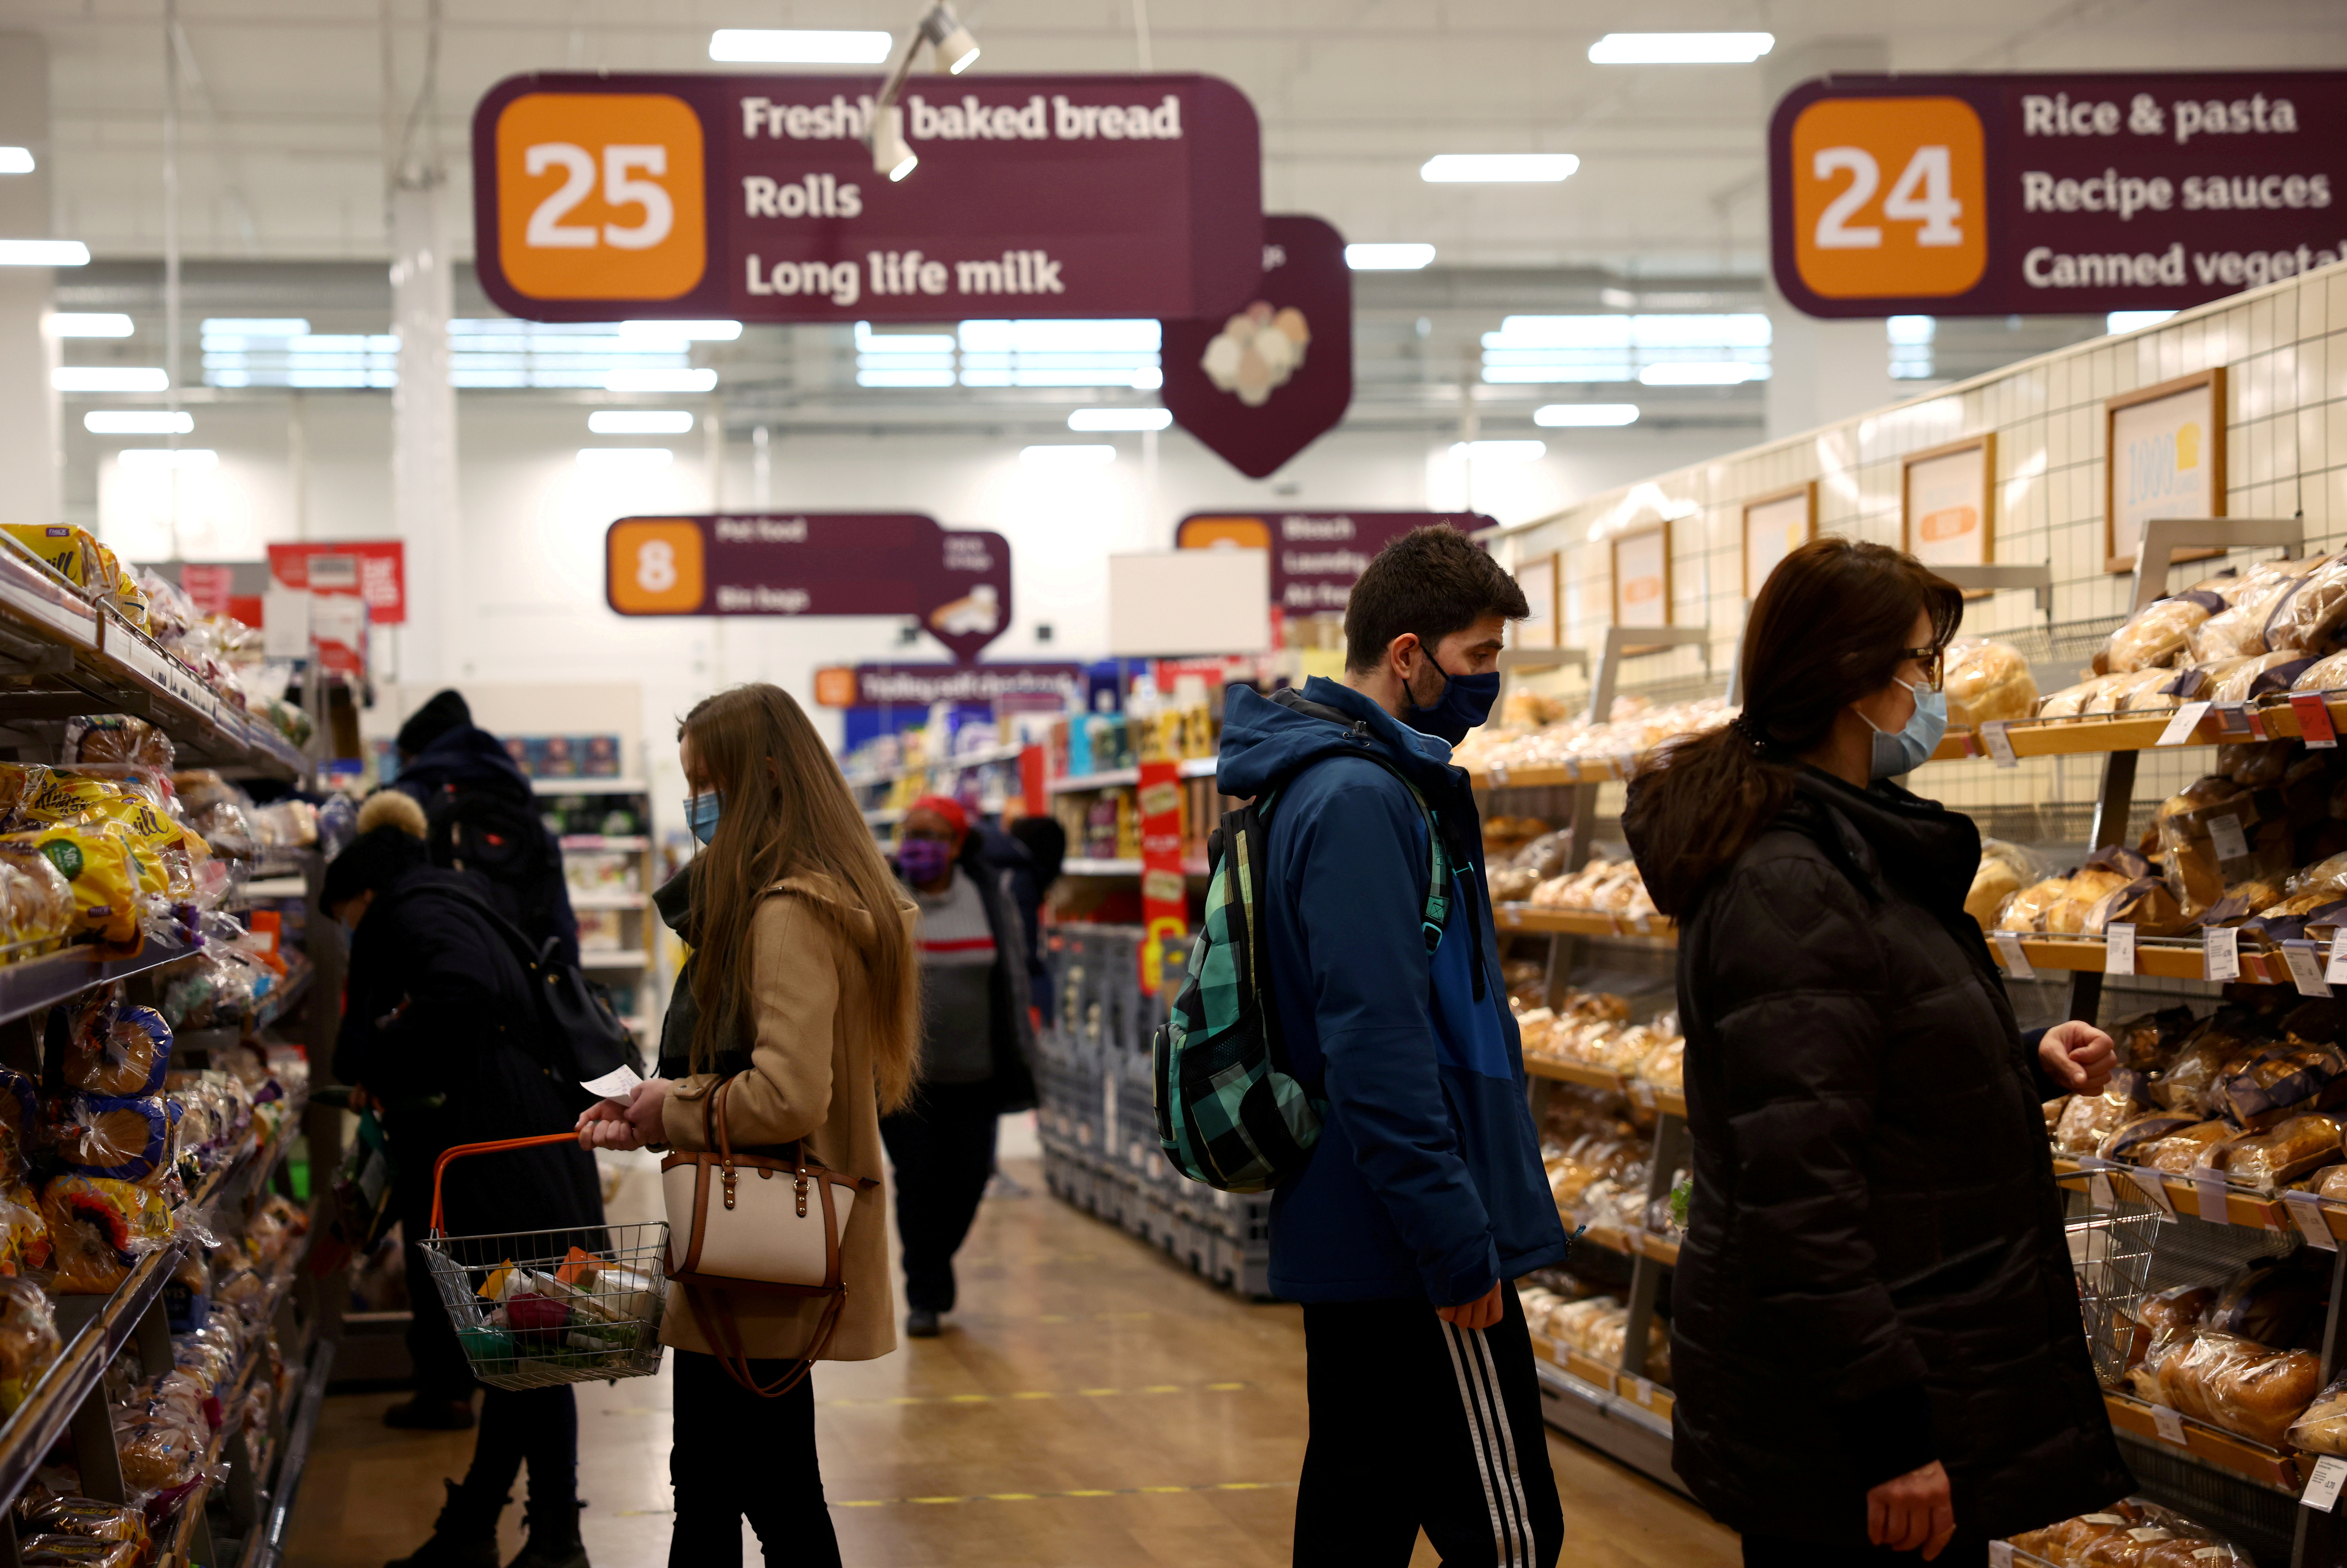 Shoppers look at bread in a Sainsbury's supermarket, amid the coronavirus disease (COVID-19) outbreak, in London, Britain January 12, 2021. REUTERS/Henry Nicholls